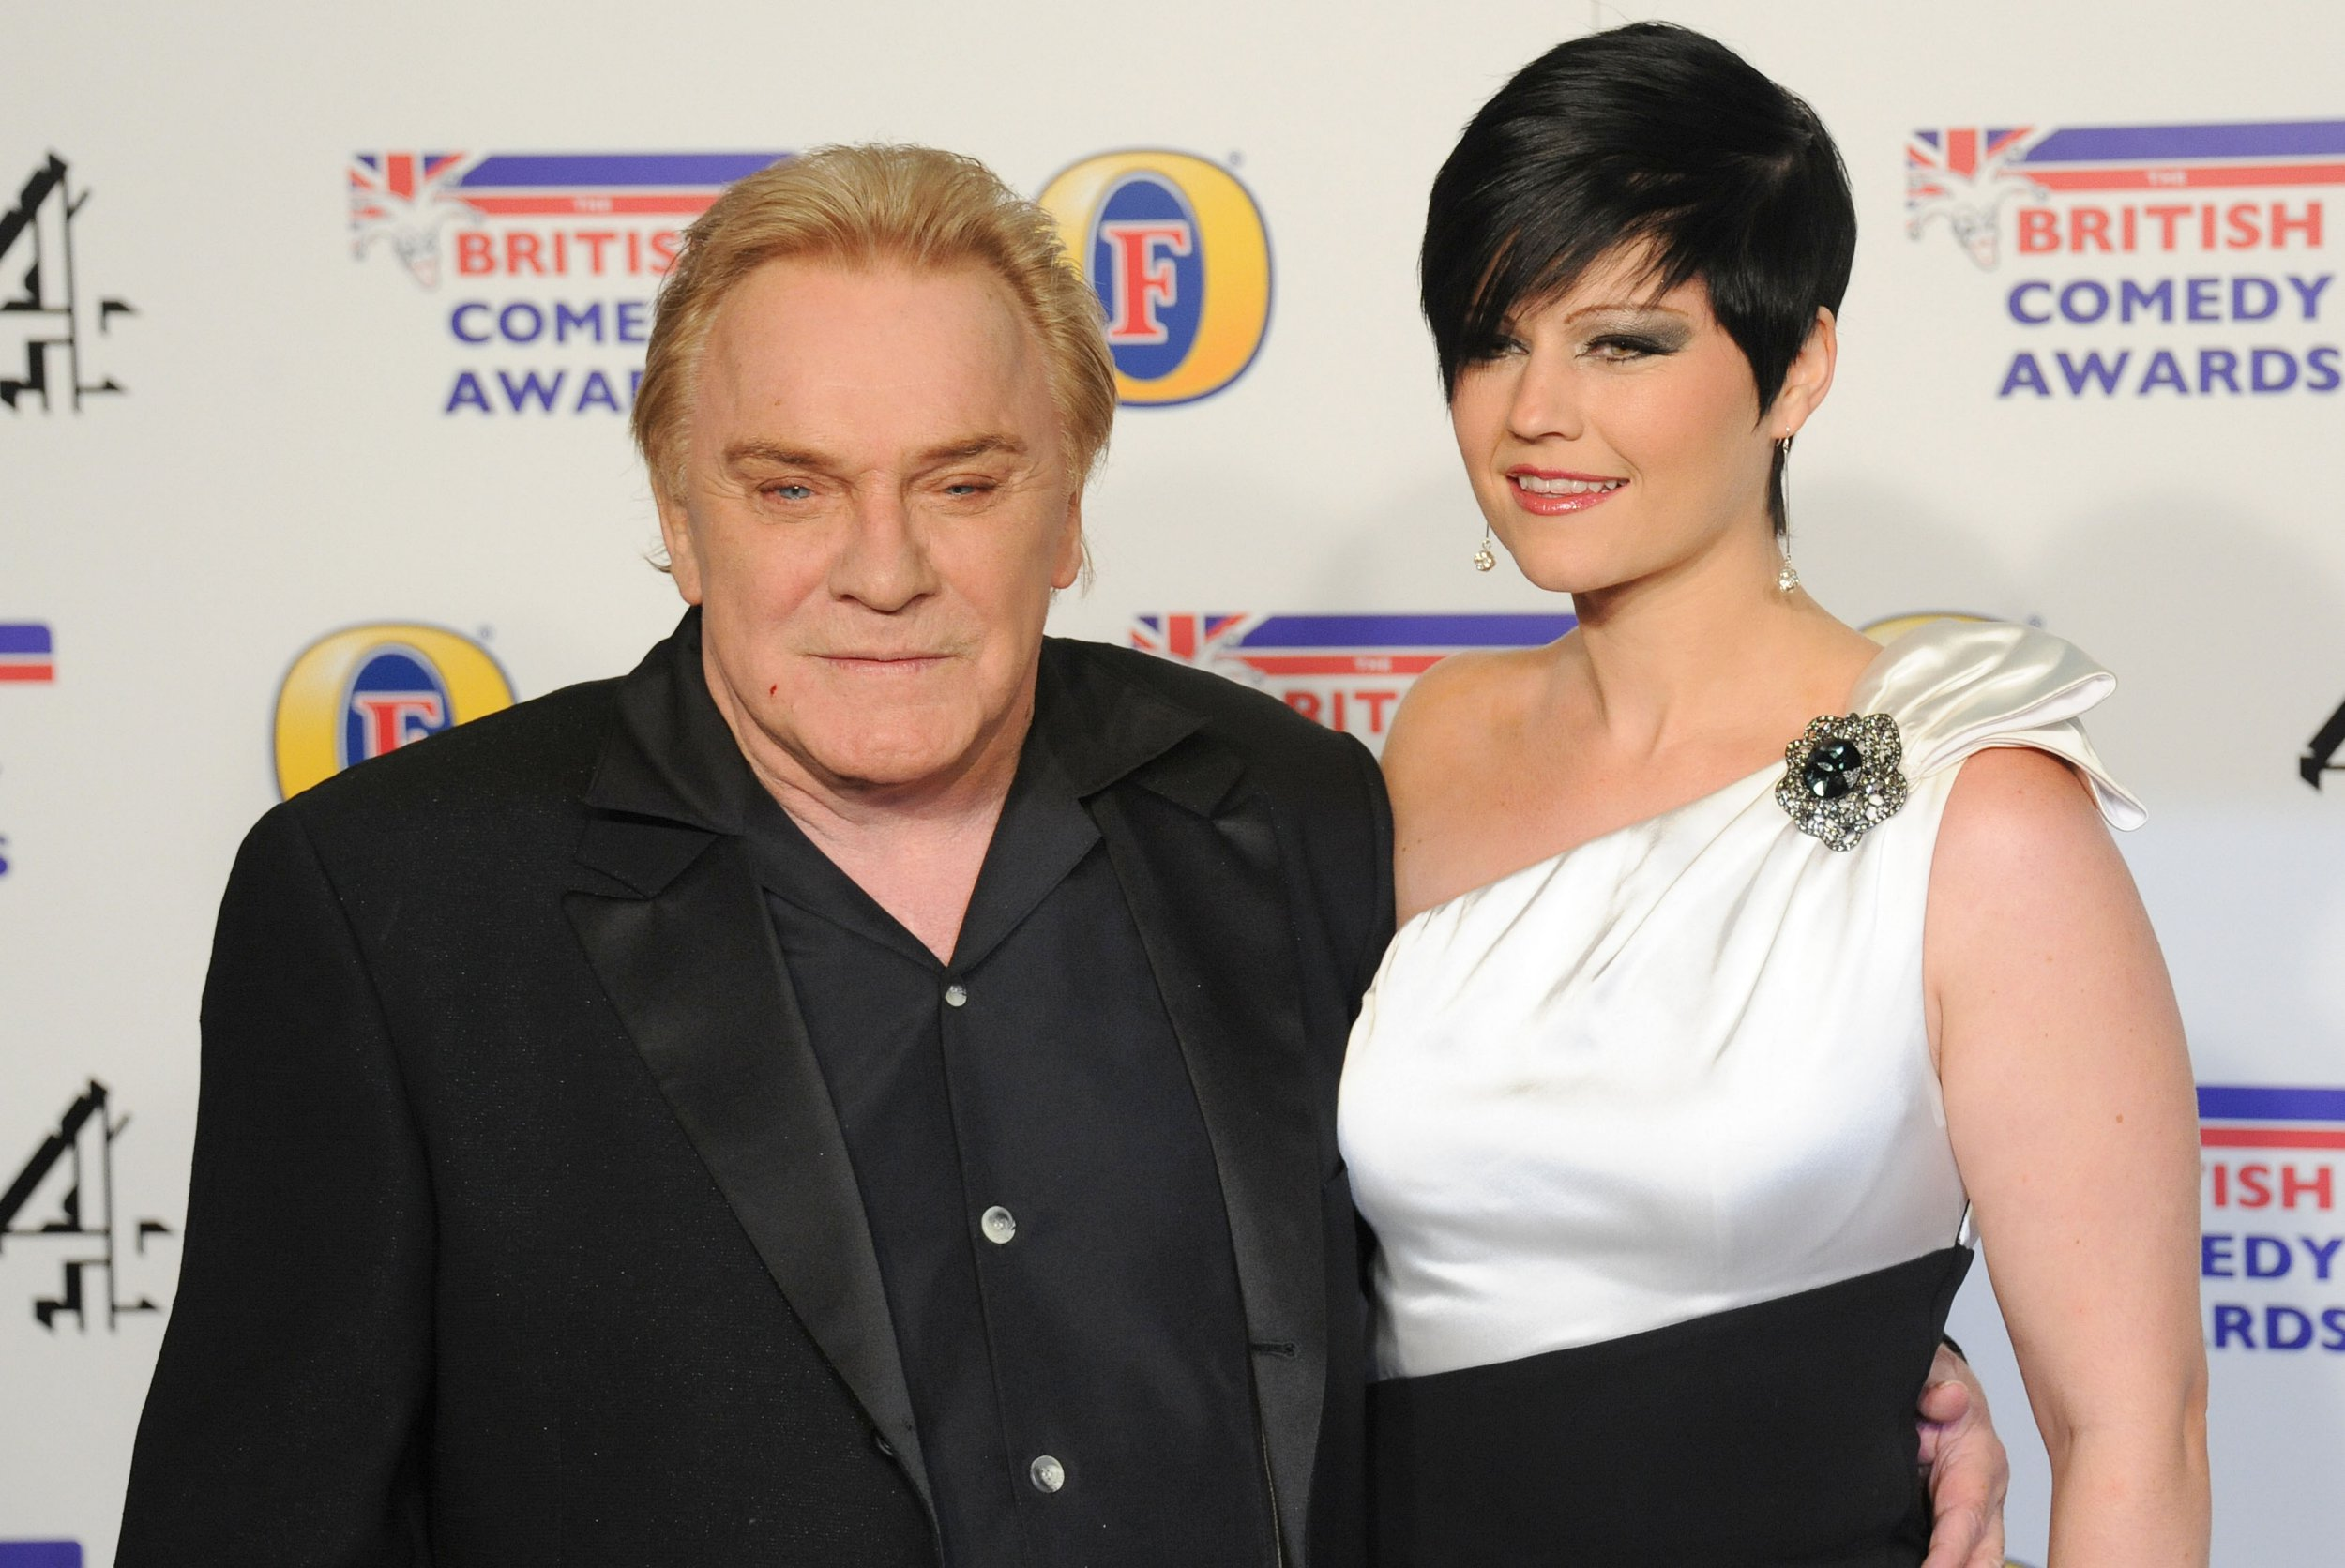 LONDON, UNITED KINGDOM - DECEMBER 16: Freddie Starr and Sophie Lea attend a British Comedy Awards during Fountain Studios on Dec 16, 2011 in London, England. (Photo by Stuart Wilson/Getty Images)